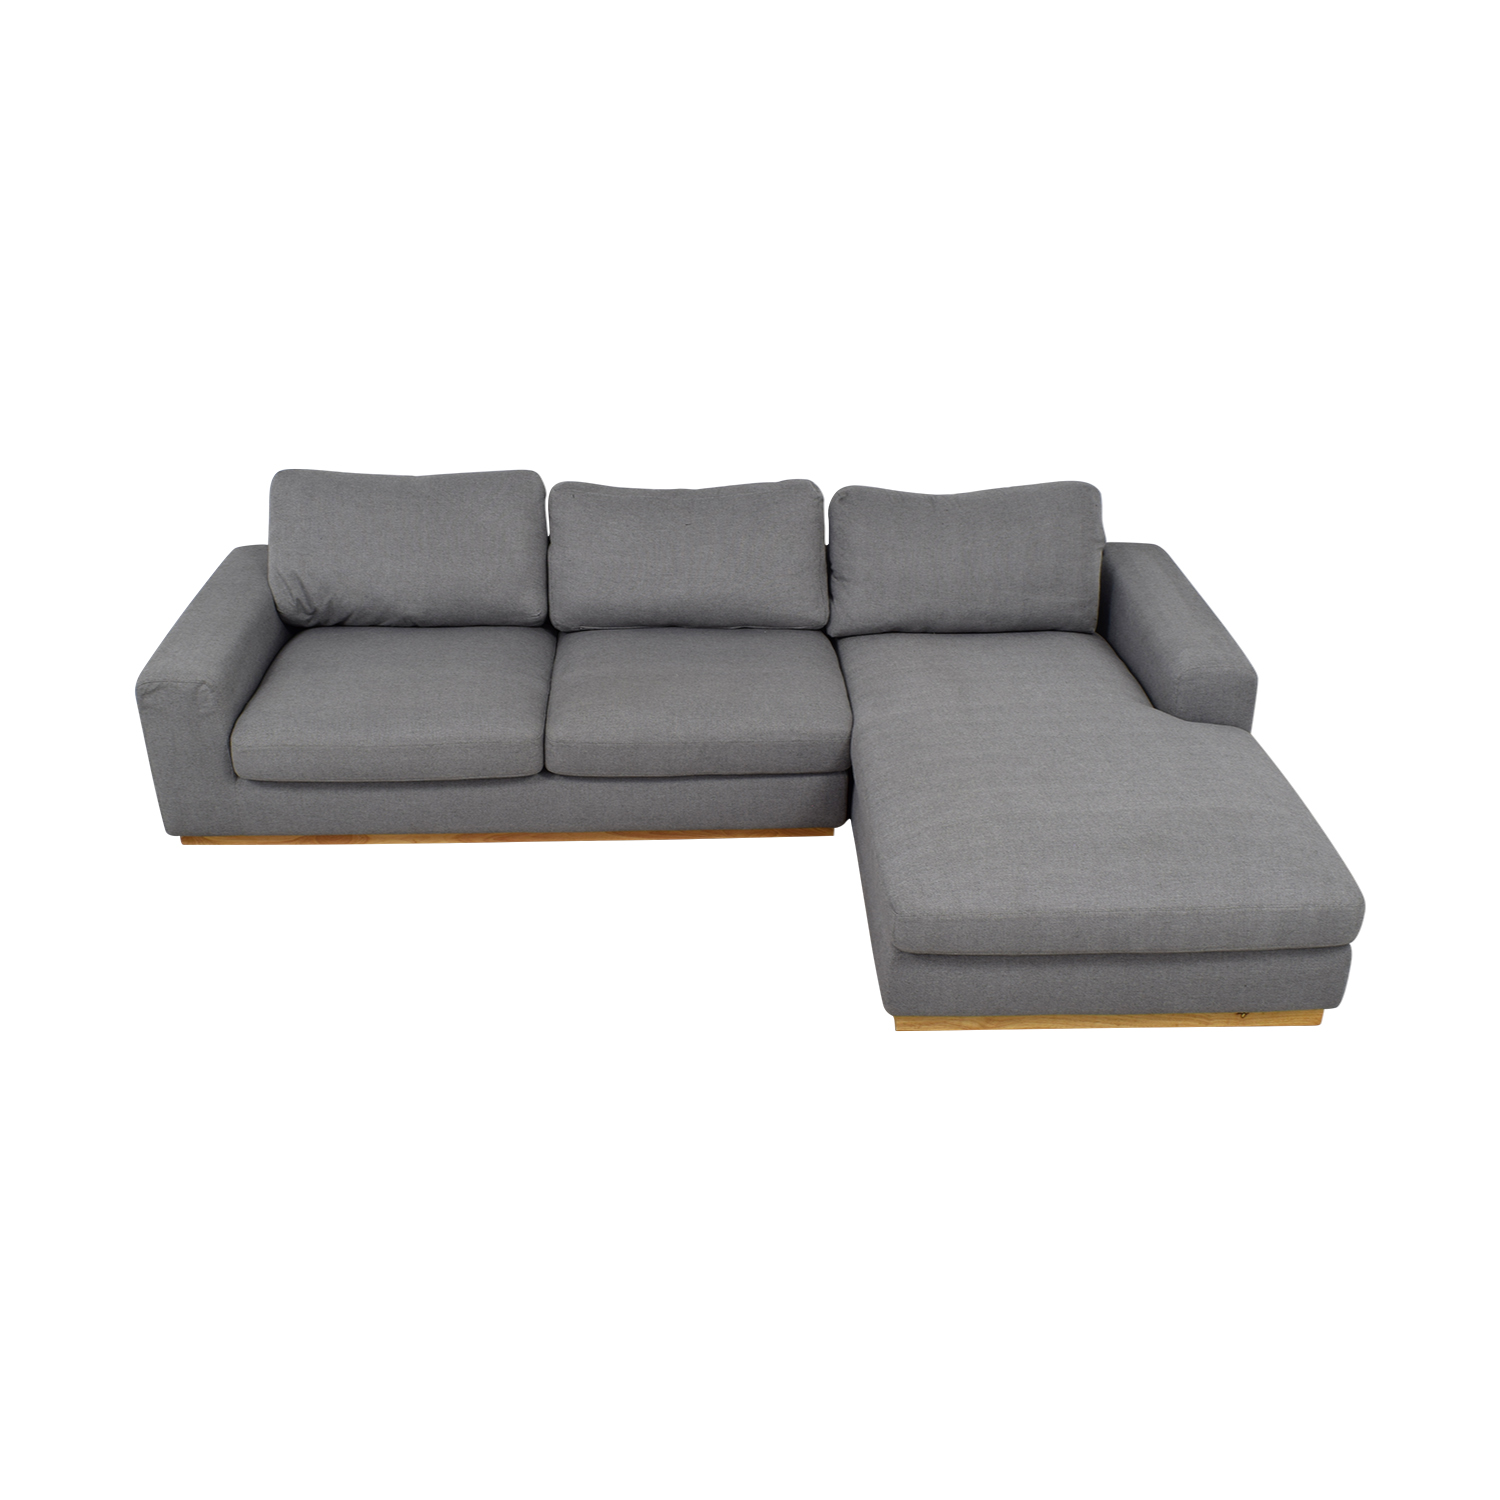 Rove Concepts Rove Concepts Noah Grey Chaise Sectional dimensions